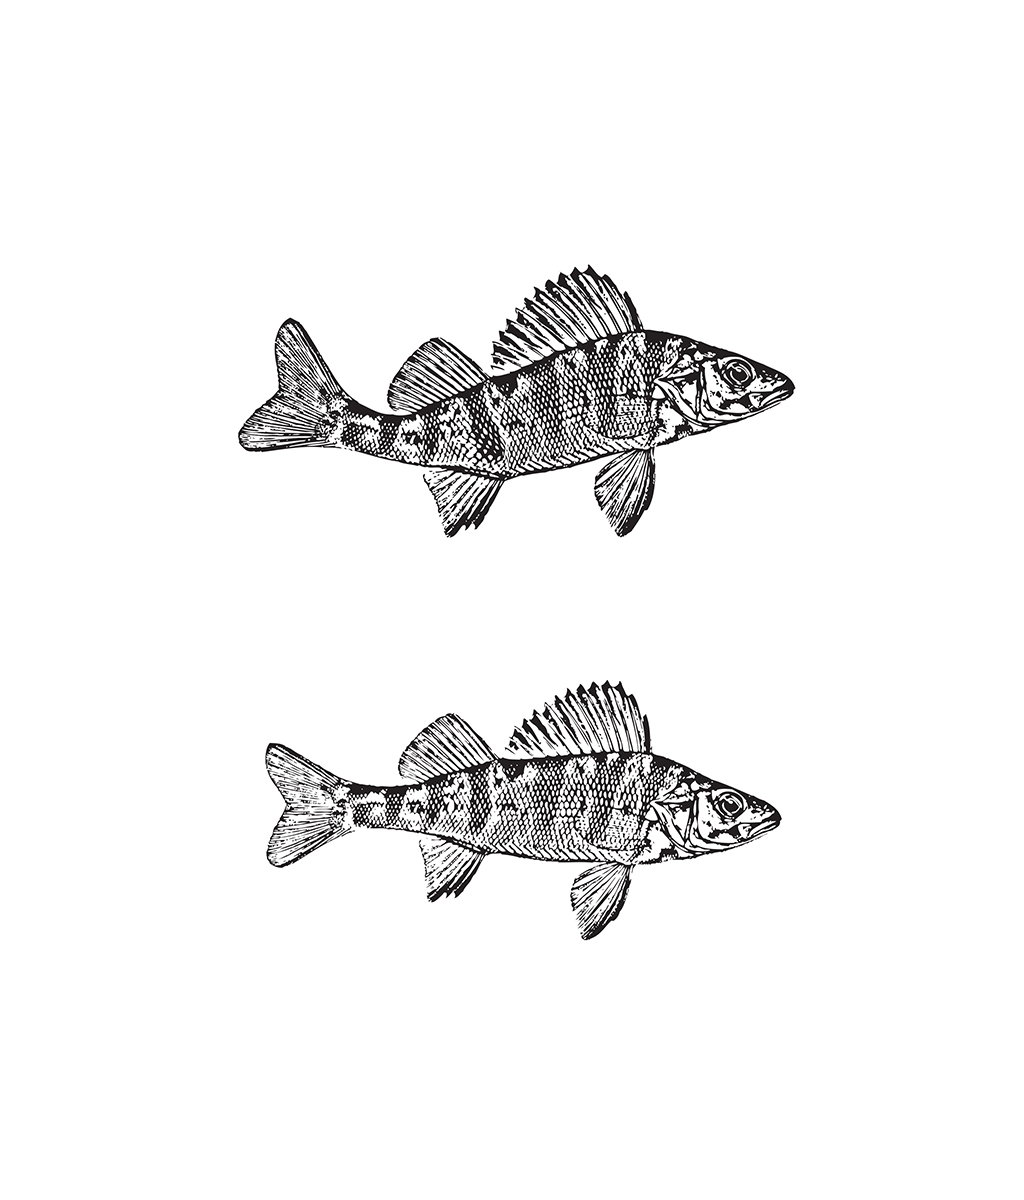 3perch-illustration